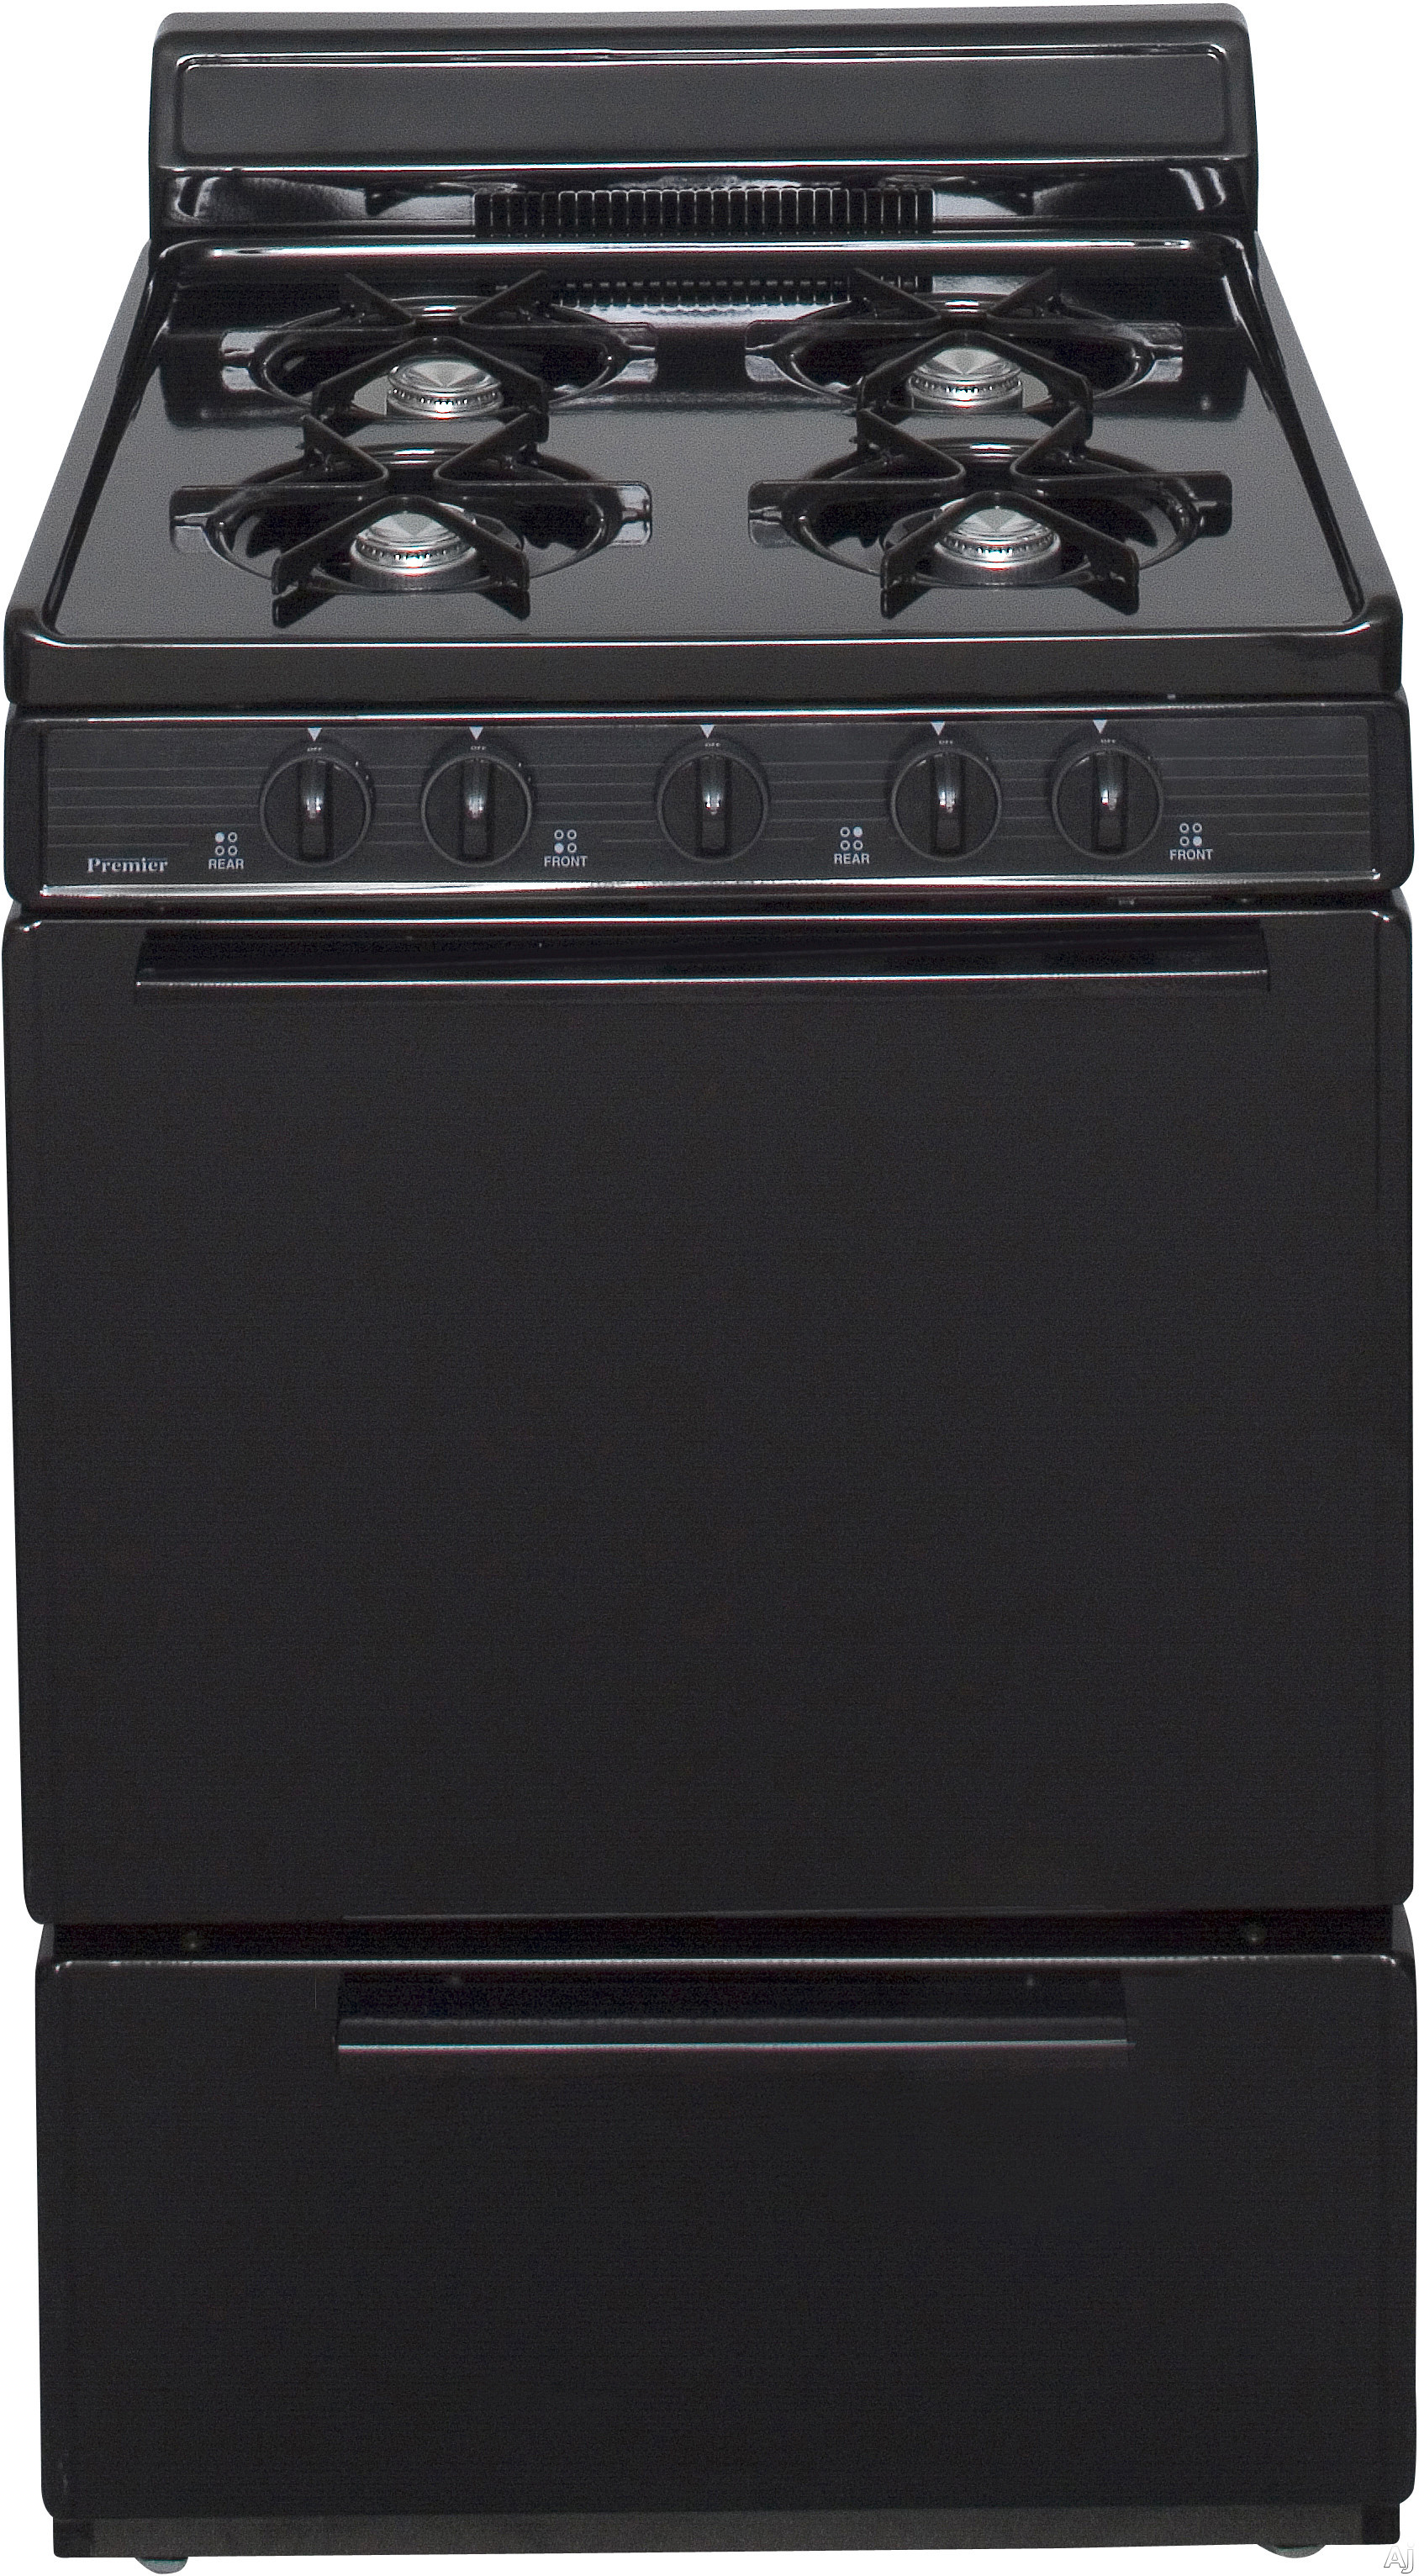 Premier BCK100BP 24 Inch Freestanding Gas Range with 4 Open Burners Battery Spark Ignition 17 000 BTU Burner and 4 Inch Porcelain Backguard Black